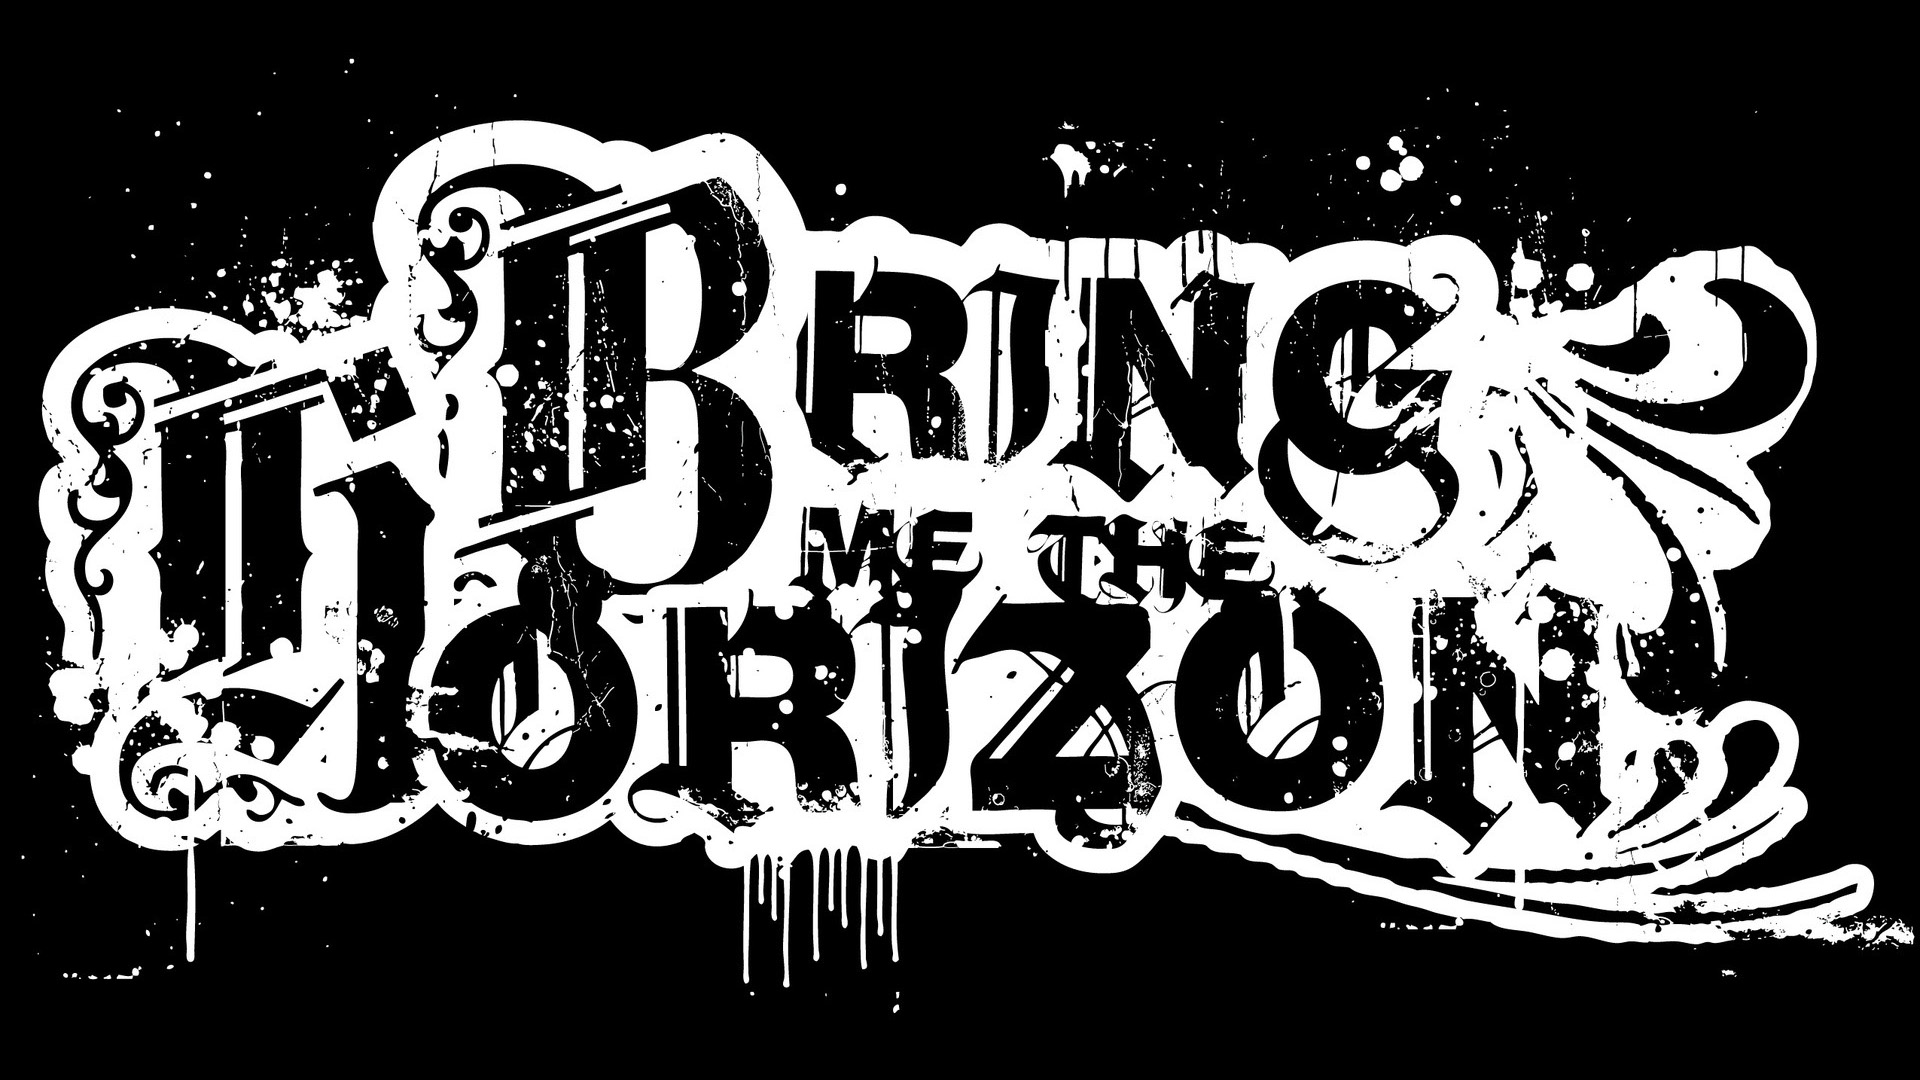 ... bring-me-the-horizon-hd-wallpaper ...